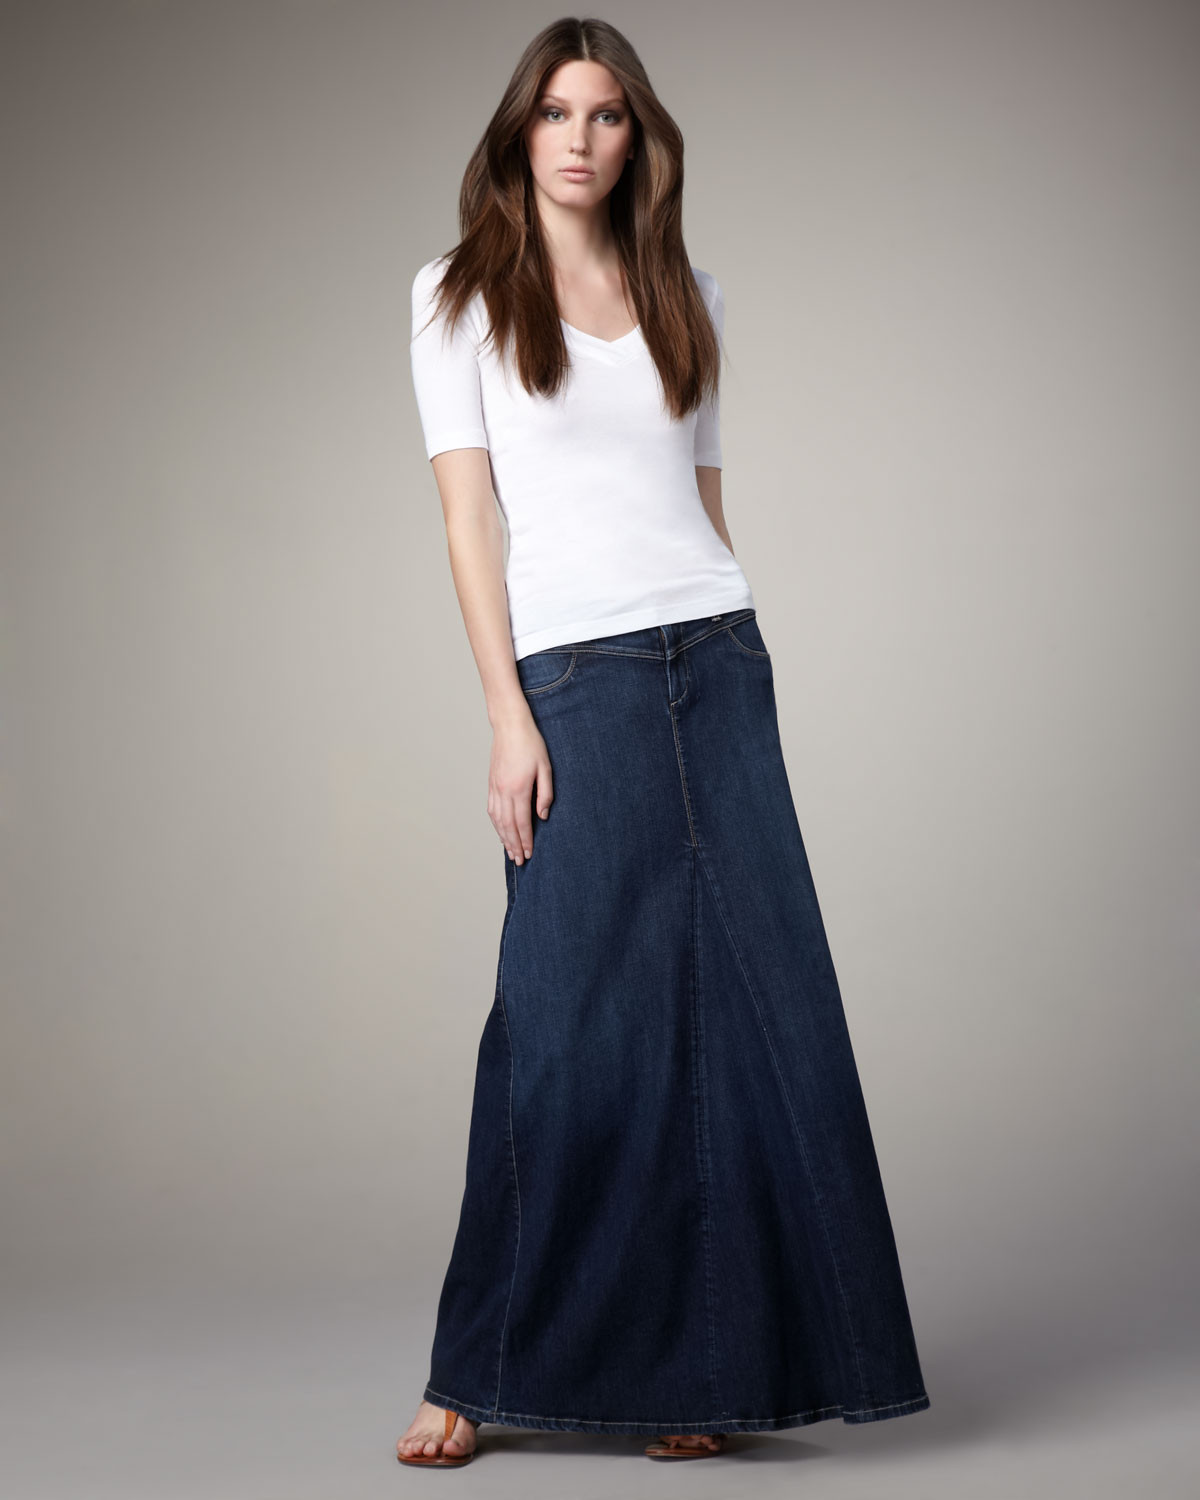 Cj by cookie johnson Steward Denim Maxi Skirt in Blue | Lyst